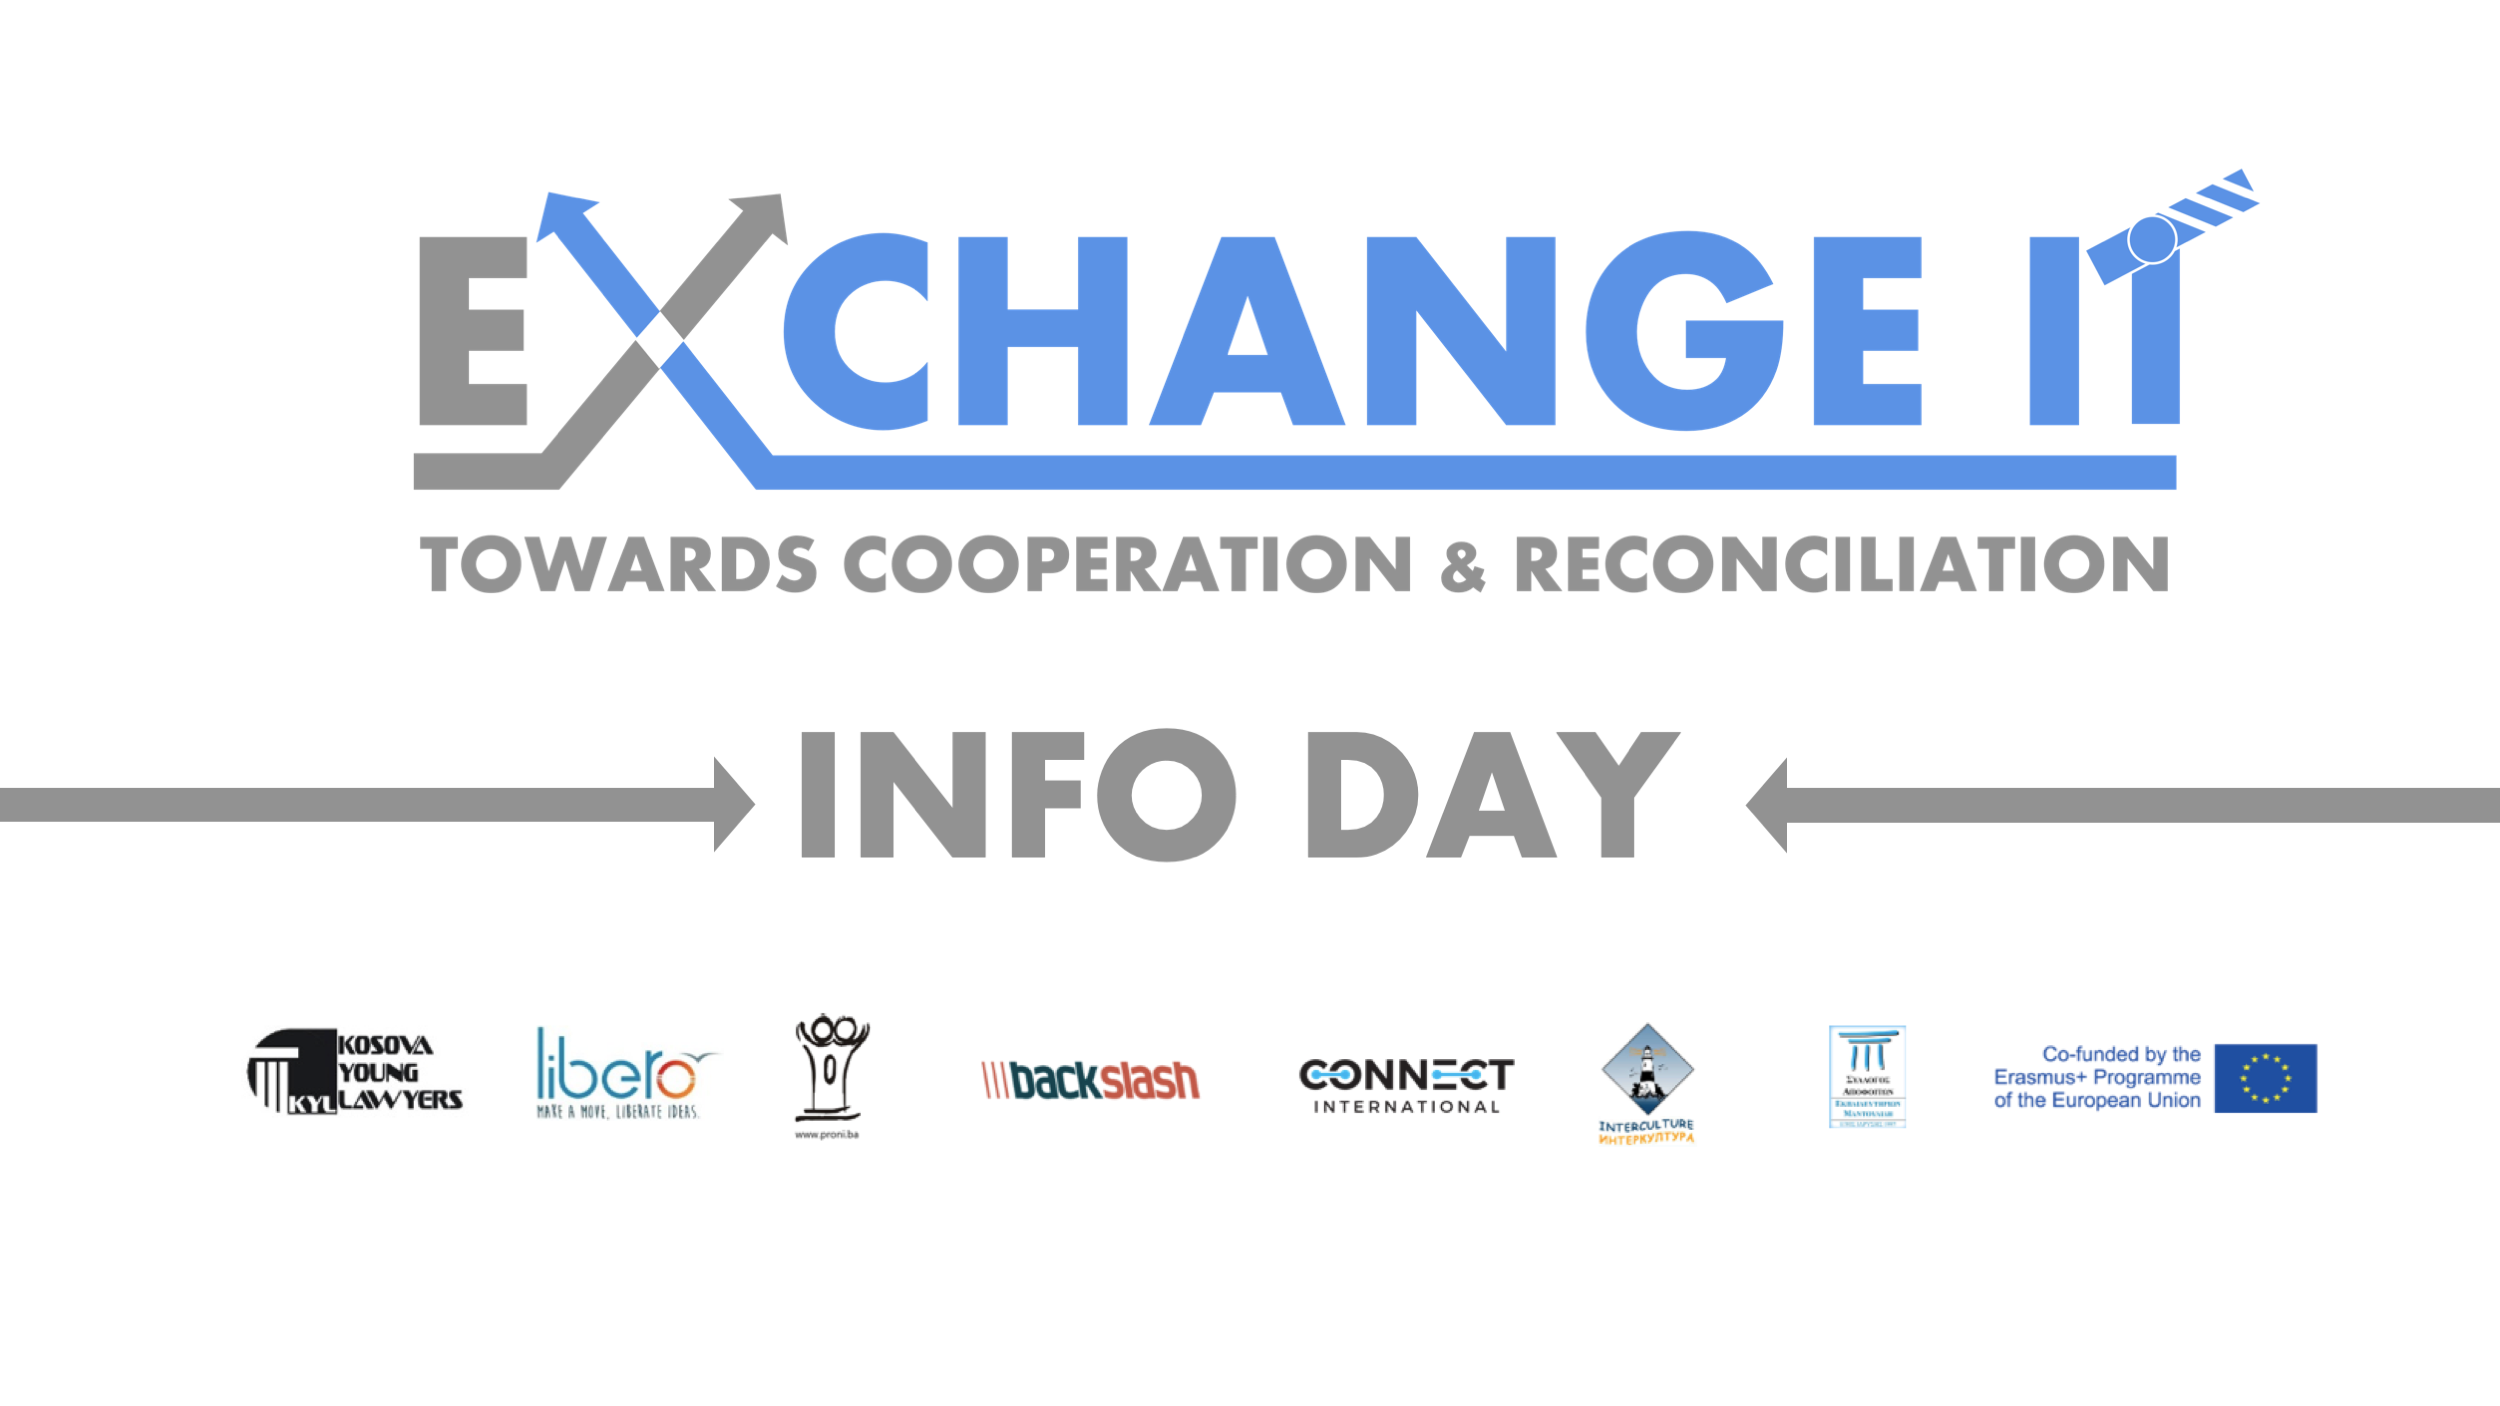 exchange it info day